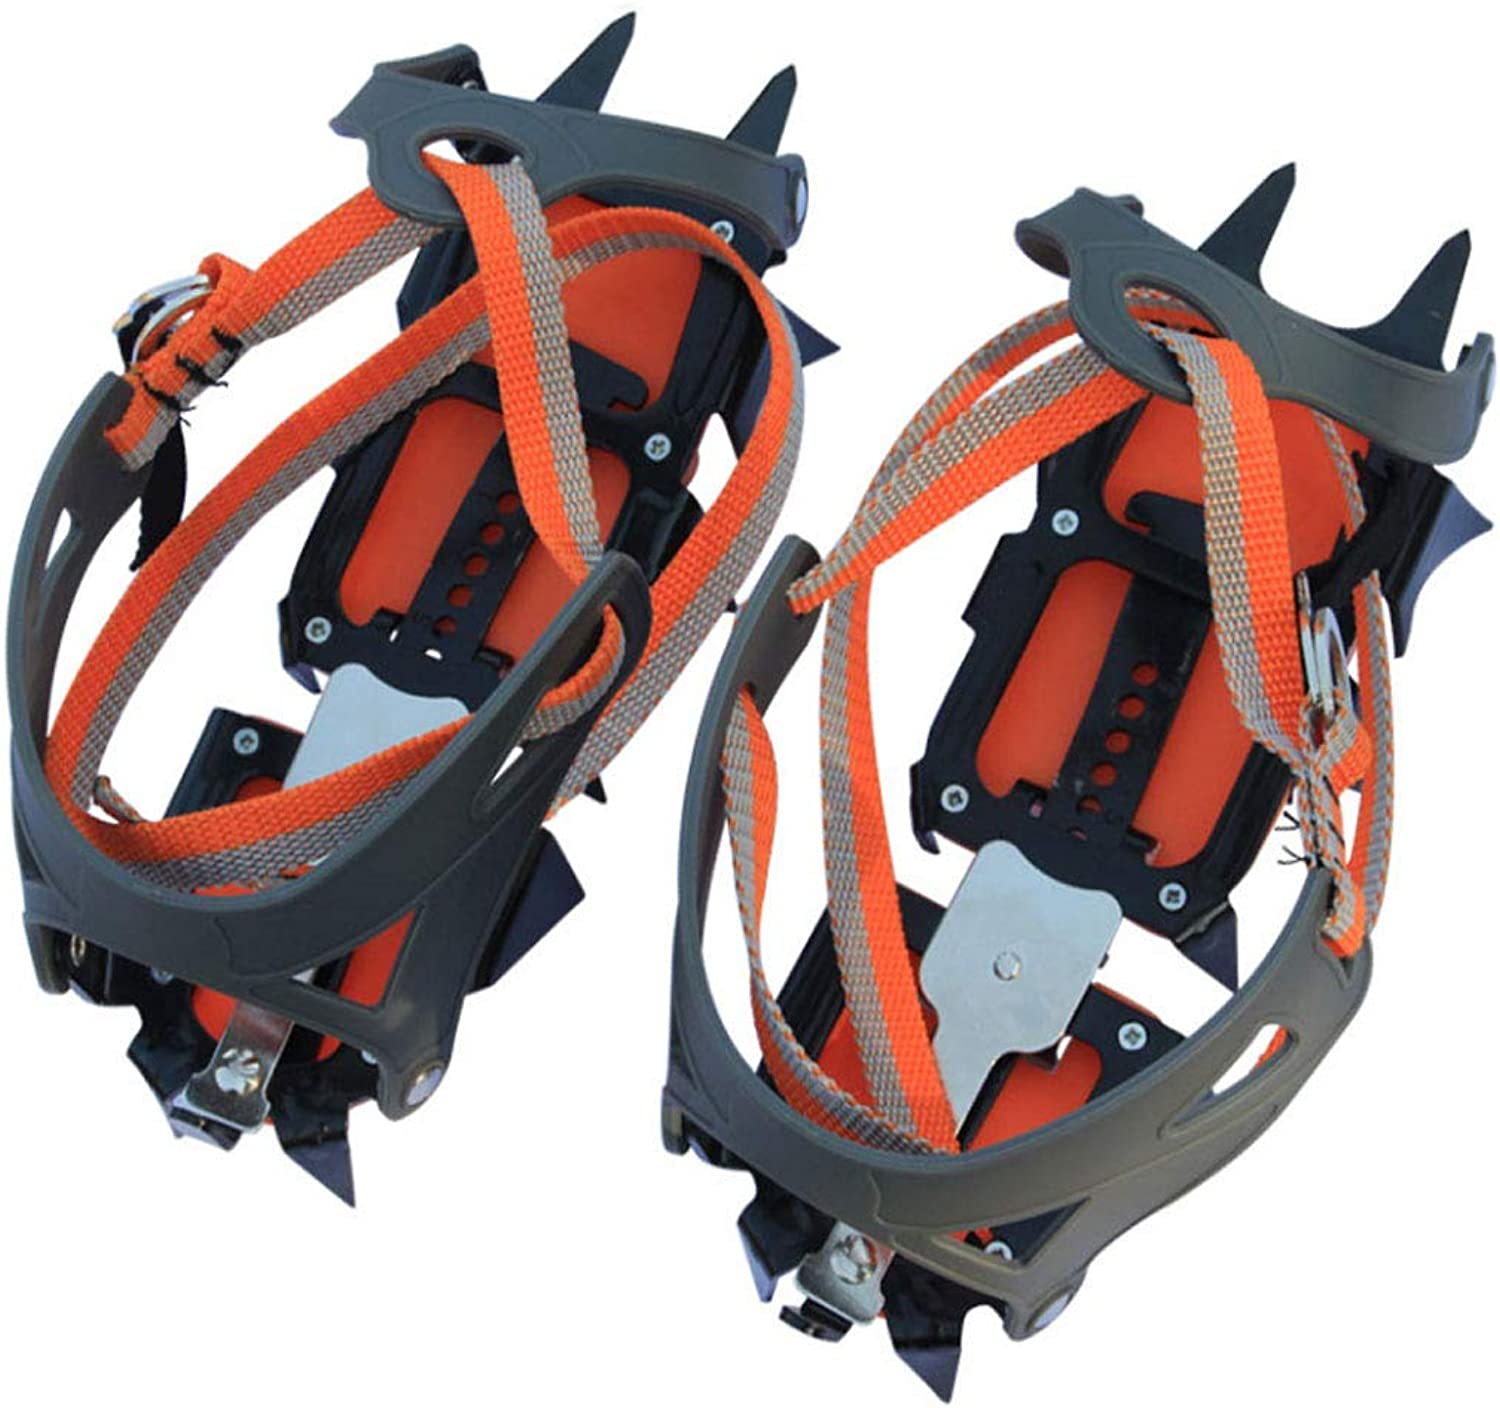 Crampons Outdoor Enhanced Version of Fourteen Teeth Large Tooth Cramps High Density Manganese Steel Material 14 Tooth Crampons with Snow Board